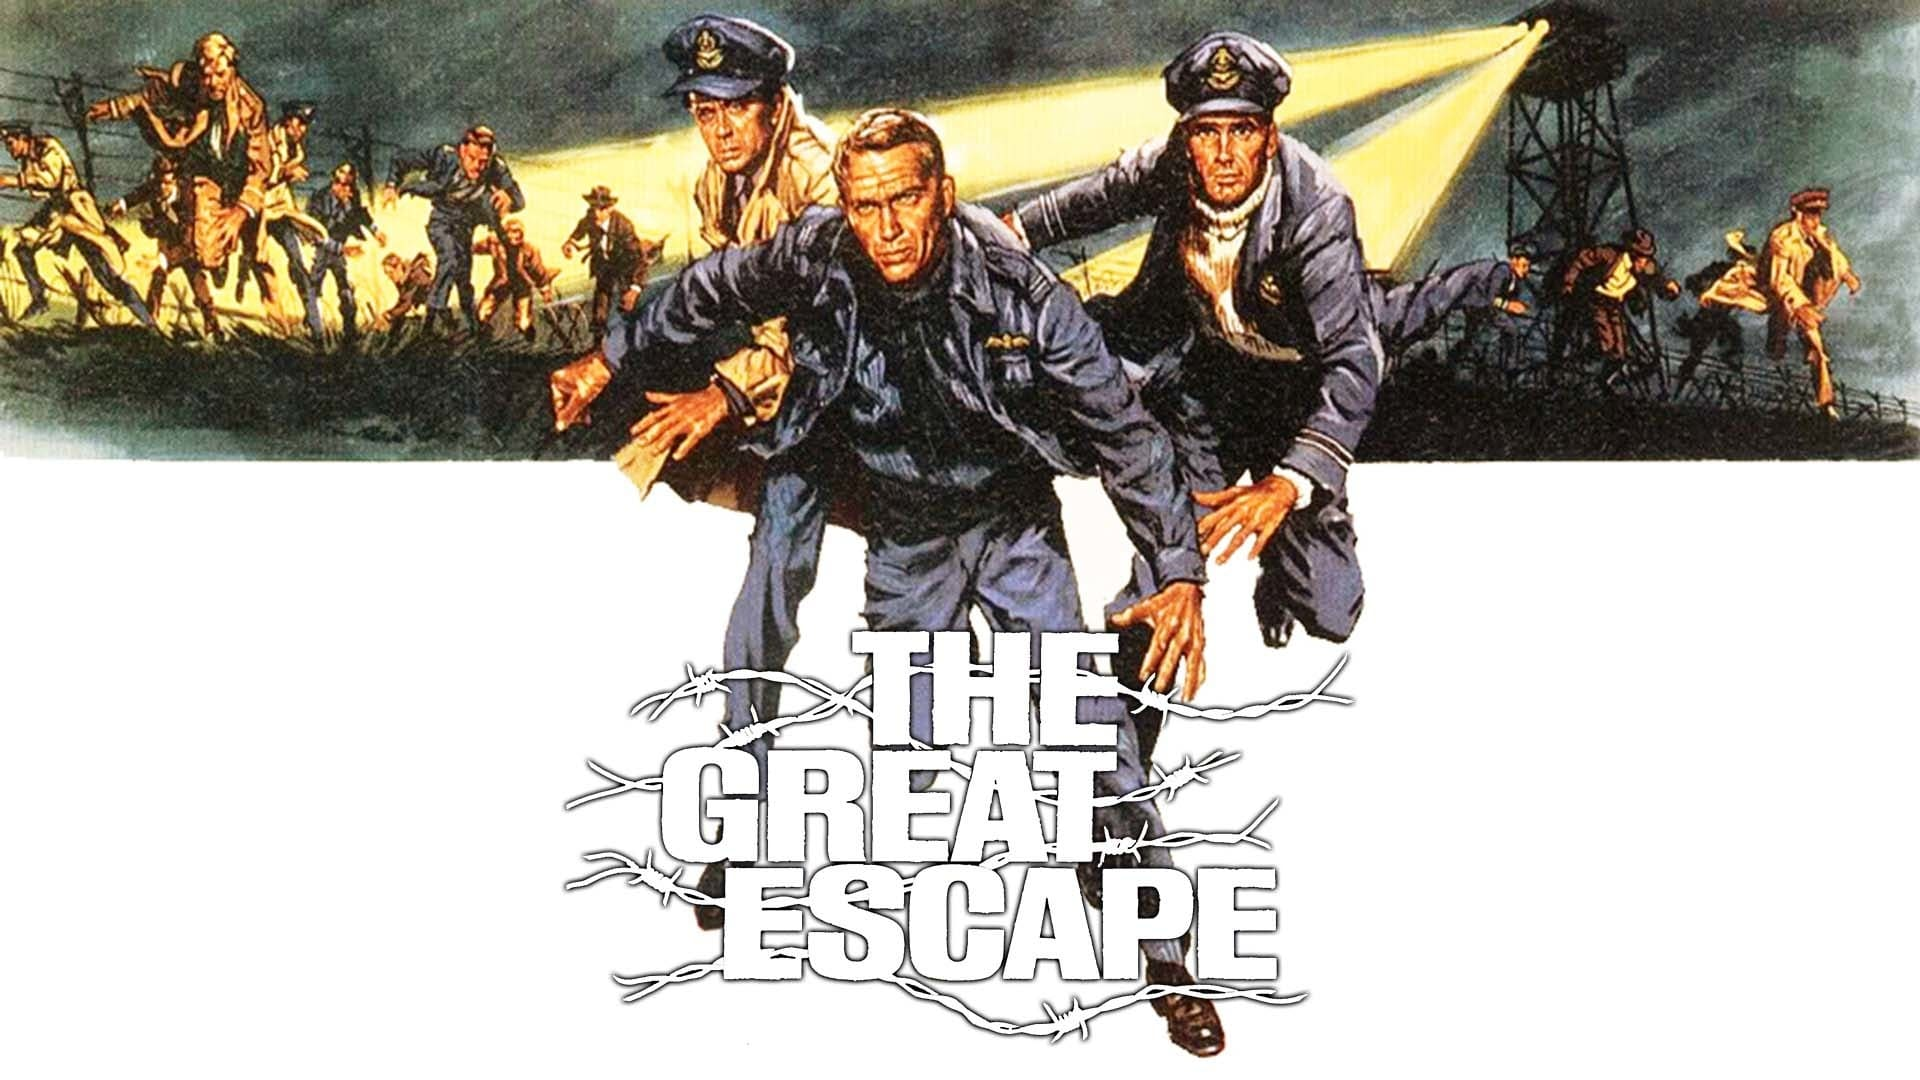 the great escape The great escape lyrics word i bring —from far up north songs i sing —from your nephew's court he's a viking, the last of the vikings with chests full of gold great tales to be told your king's.